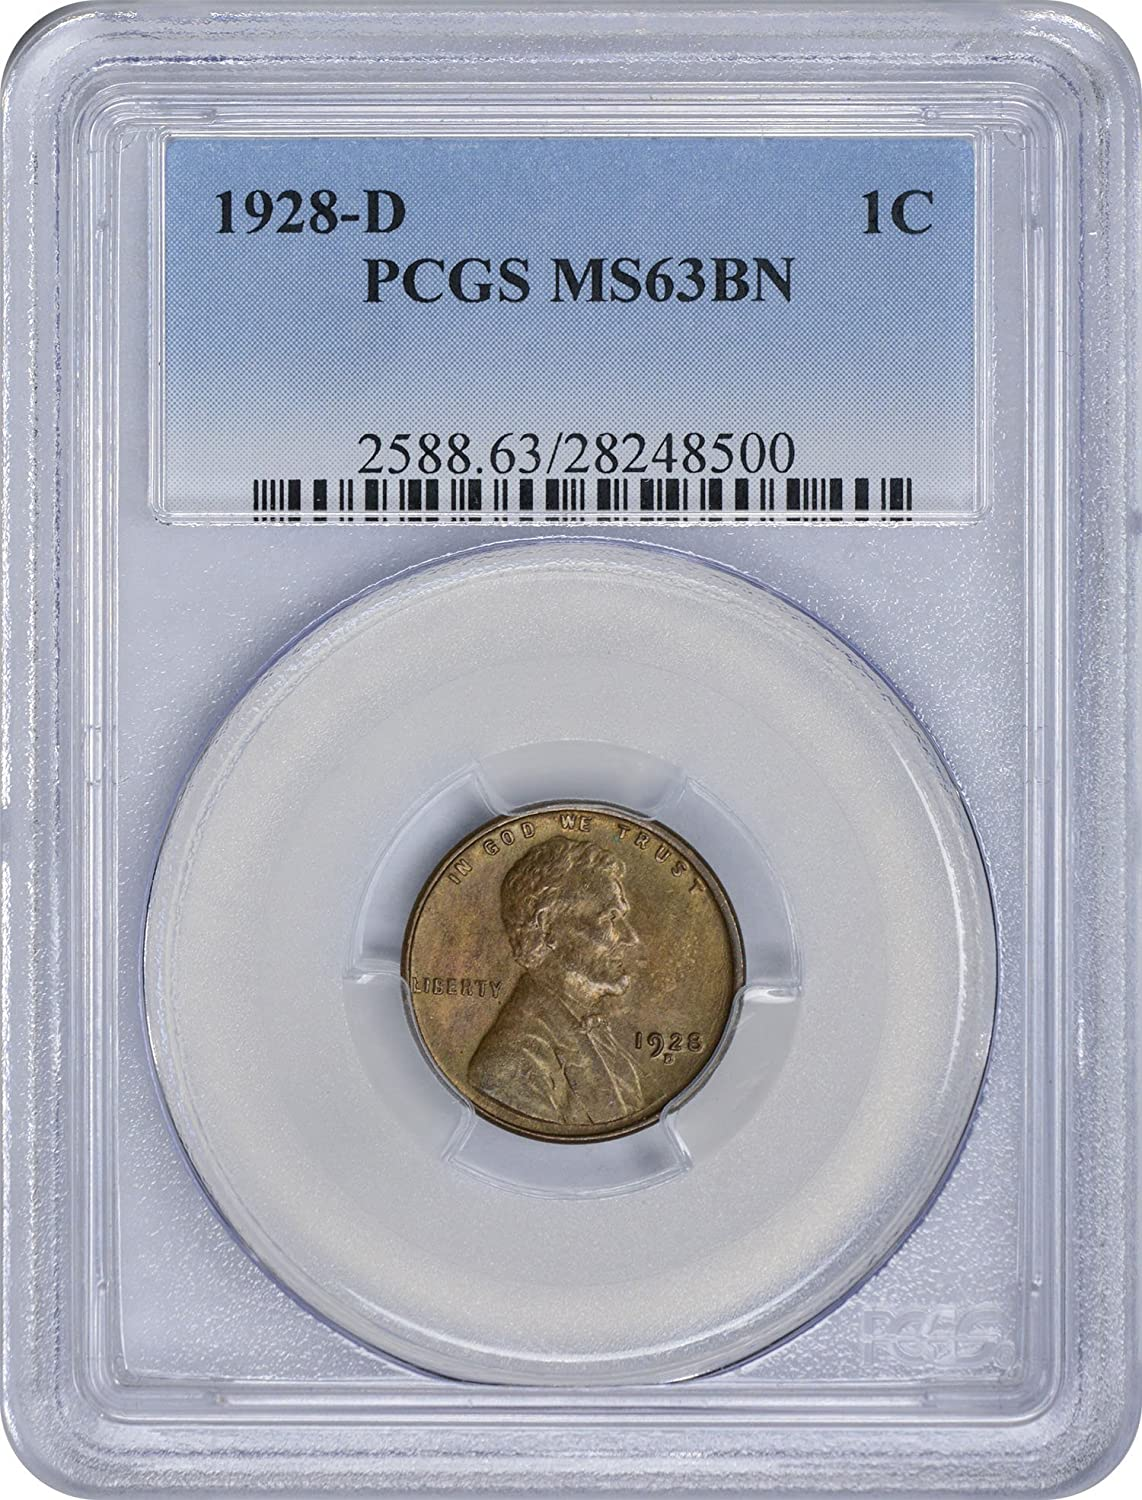 1928-D Lincoln Cent MS63BN PCGS Mint State 63 Brown